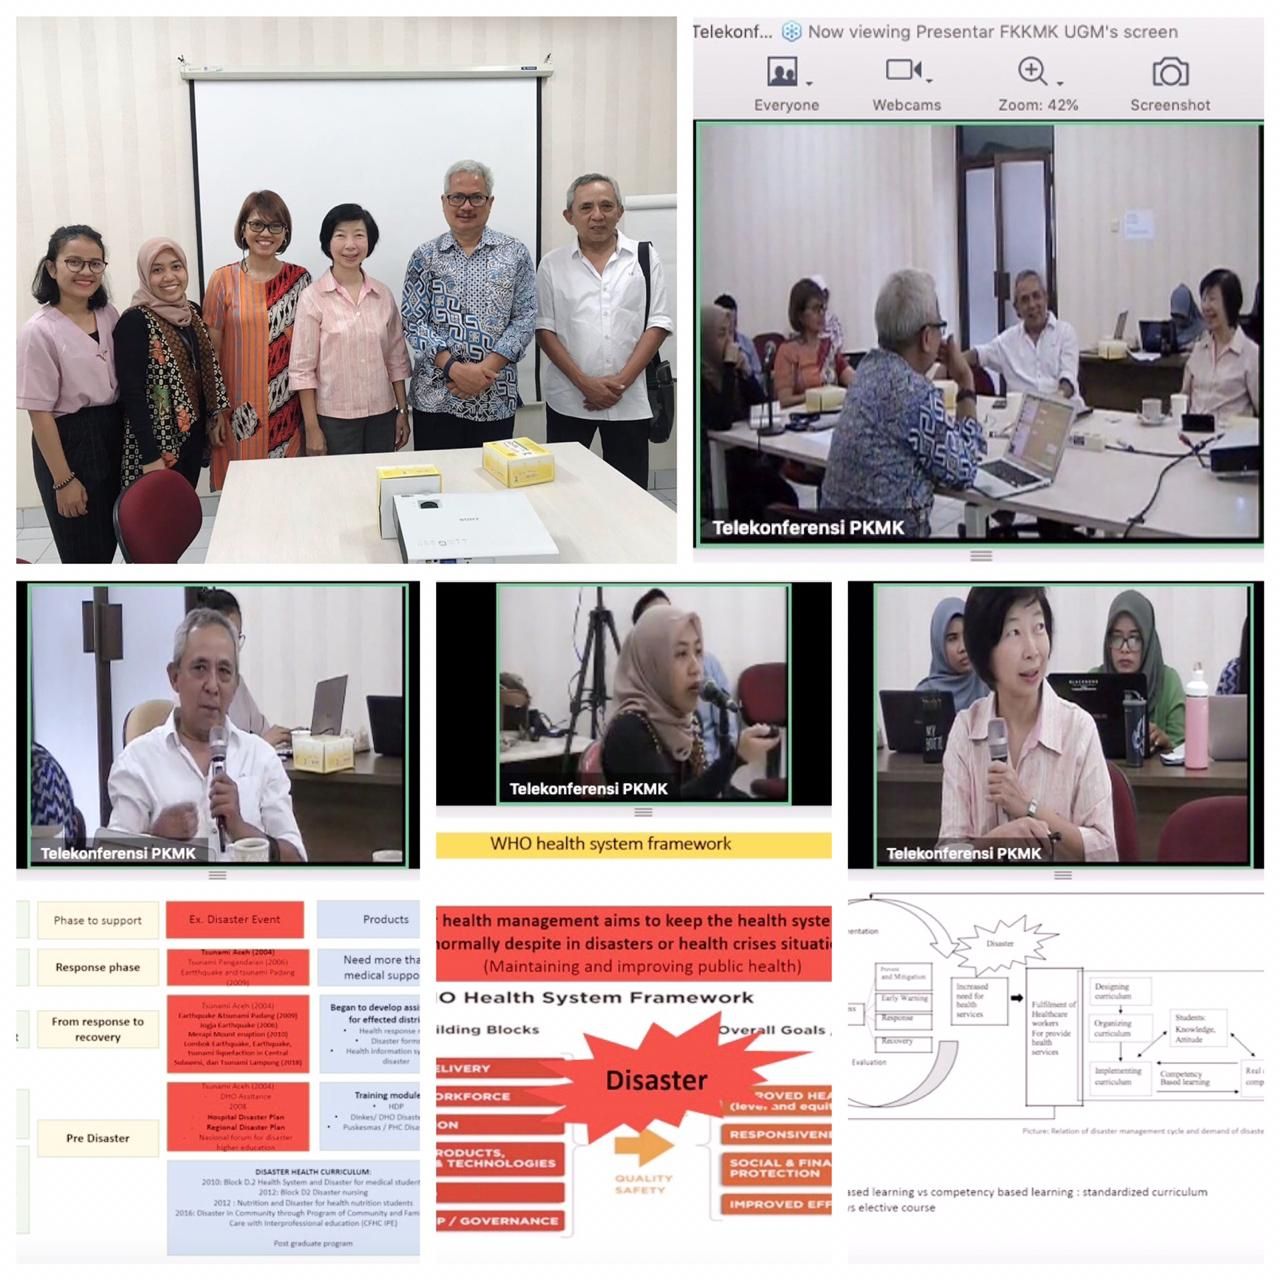 webinar-reportage-financing-for-disaster-management-in-indonesia-opportunities-and-challenges-discussion-with-community-of-practice